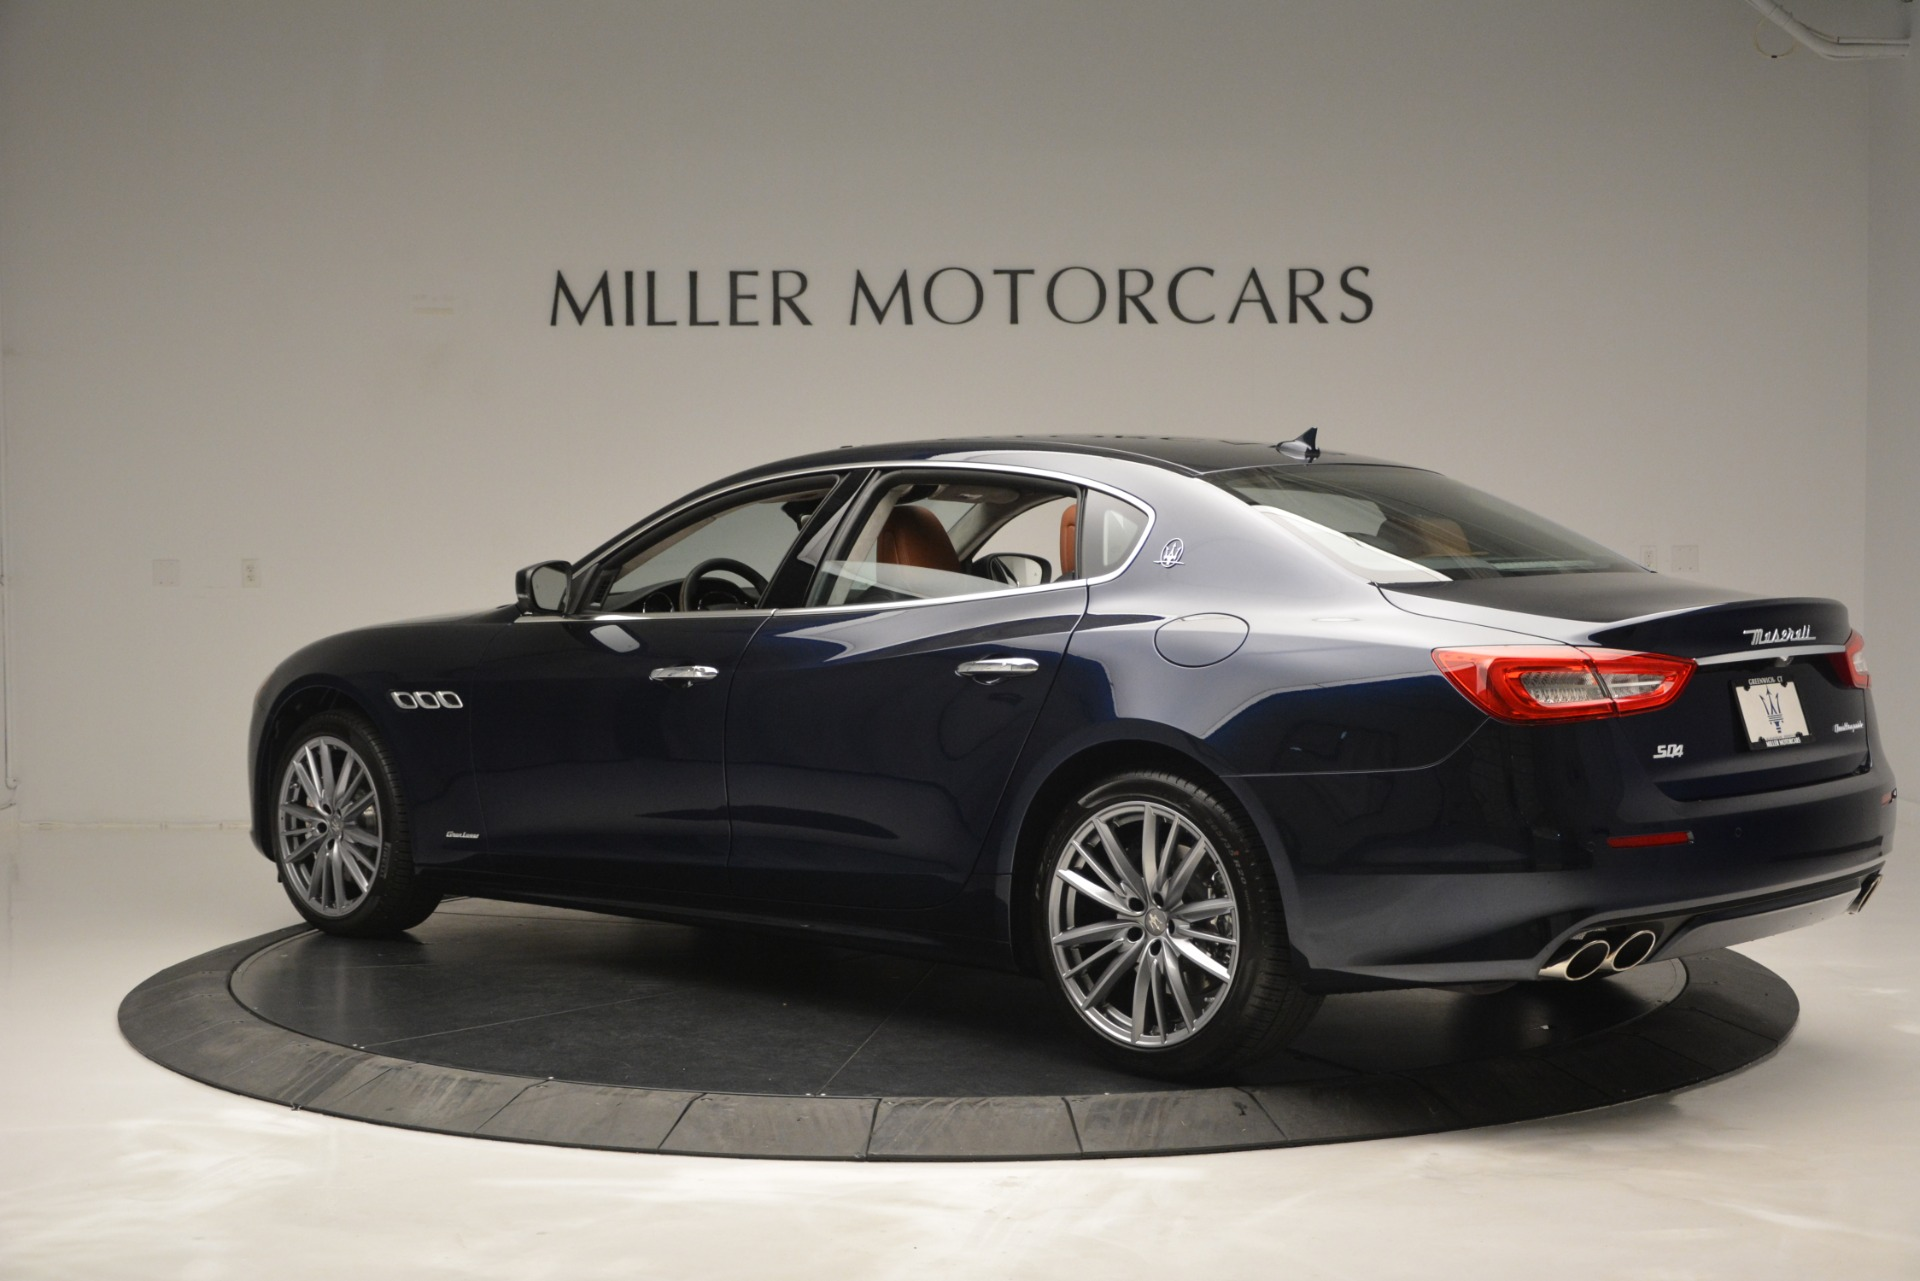 New 2019 Maserati Quattroporte S Q4 GranLusso Edizione Nobile For Sale In Greenwich, CT 2898_p7